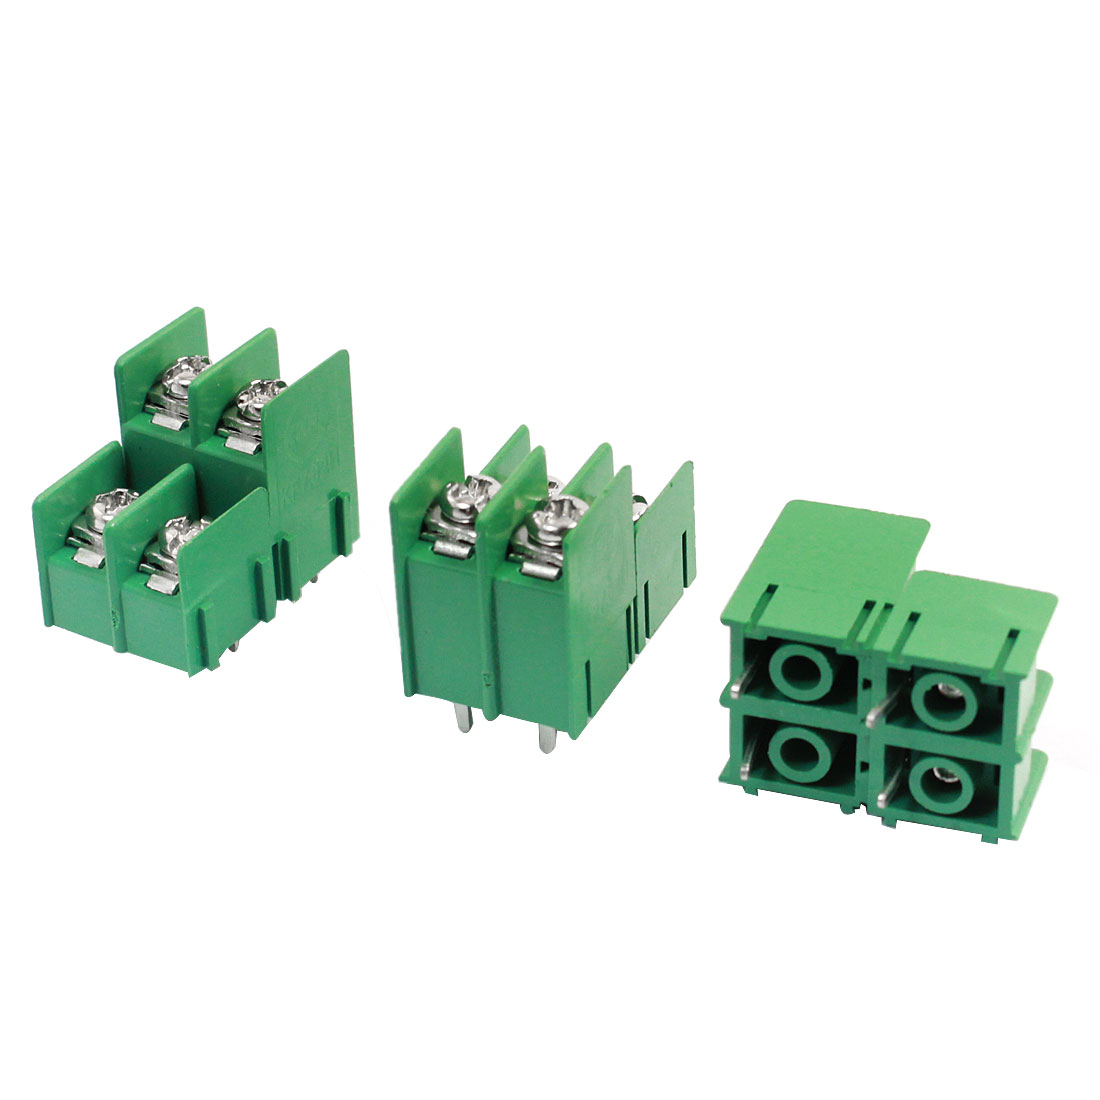 3 Pcs 4 pins 7.62mm Pitch 4 Position Terminal Block Green